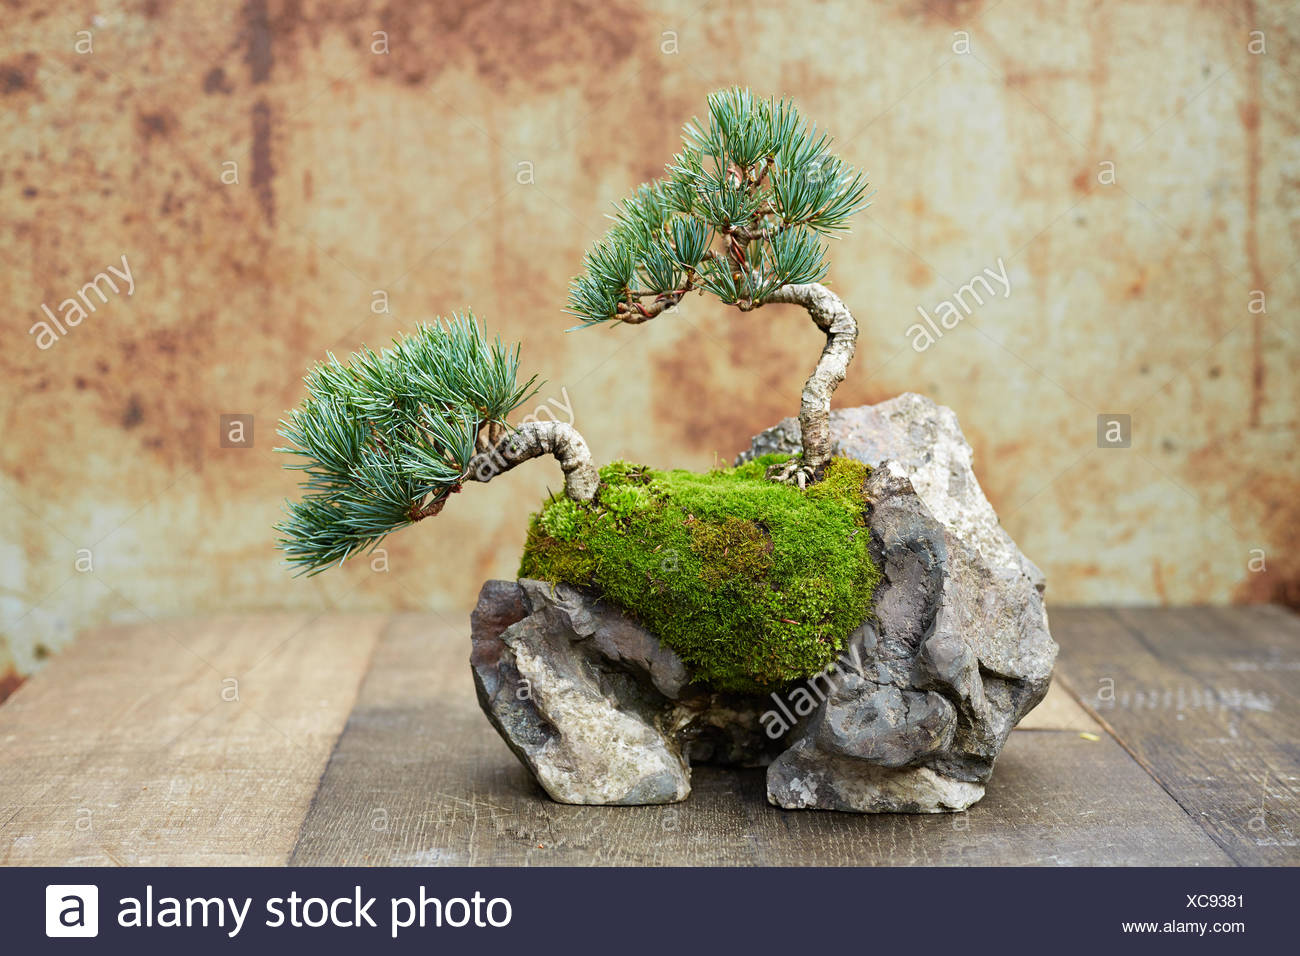 Bonsai rock planting, Five-needle Pine - Stock Image